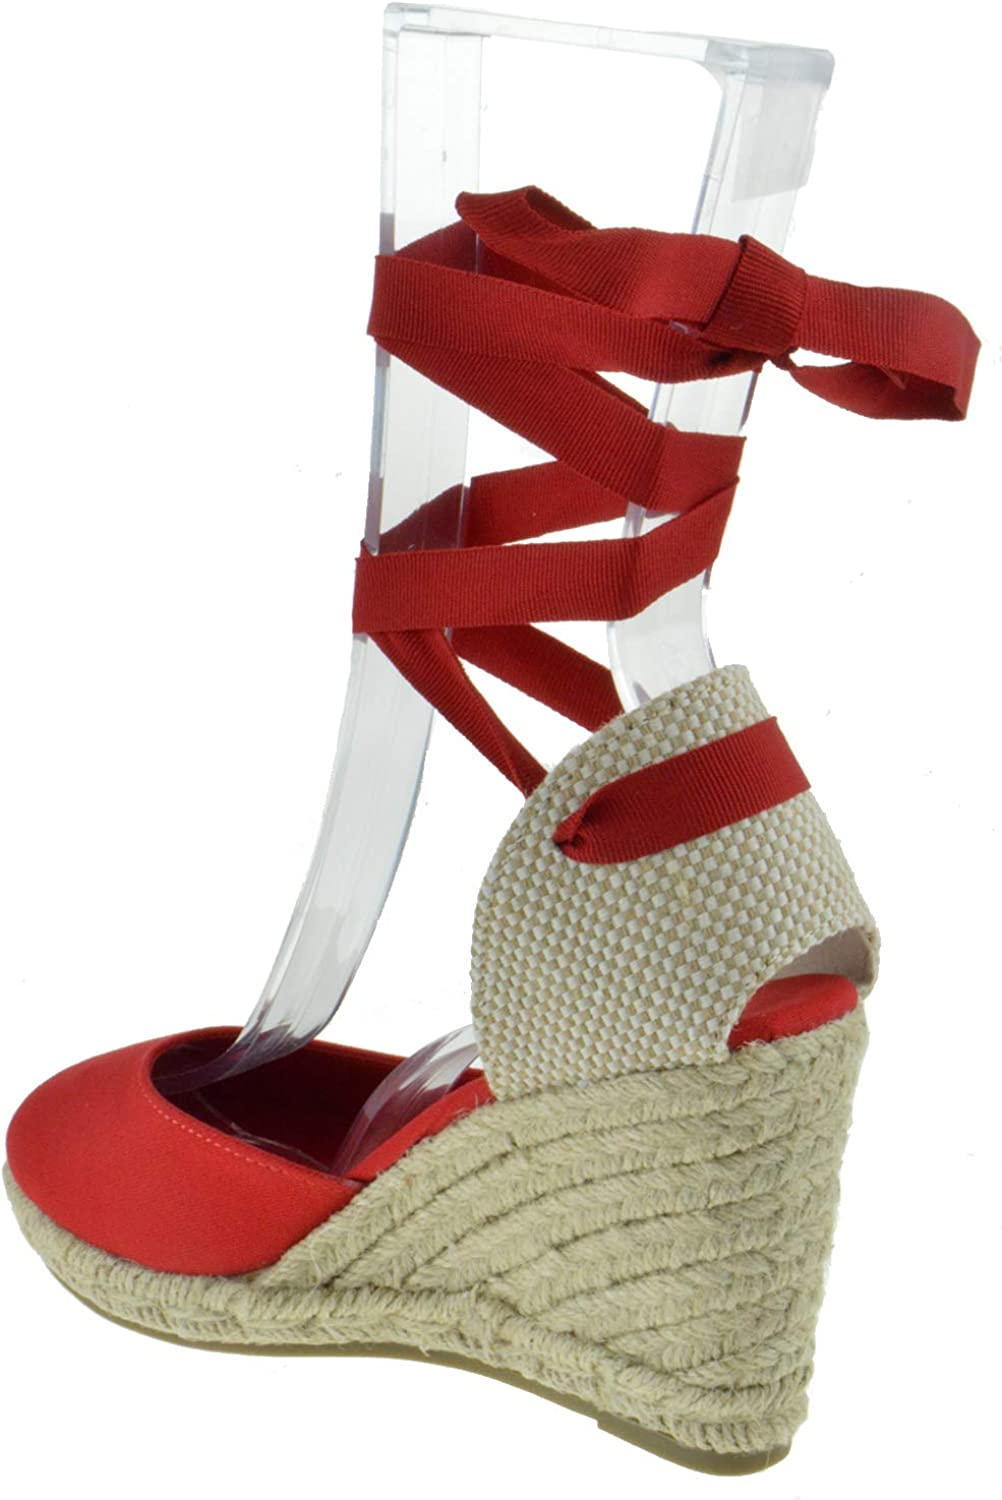 BAMBOO Charade 24 M Womens Fabric Lace Wedge Platform Sandals